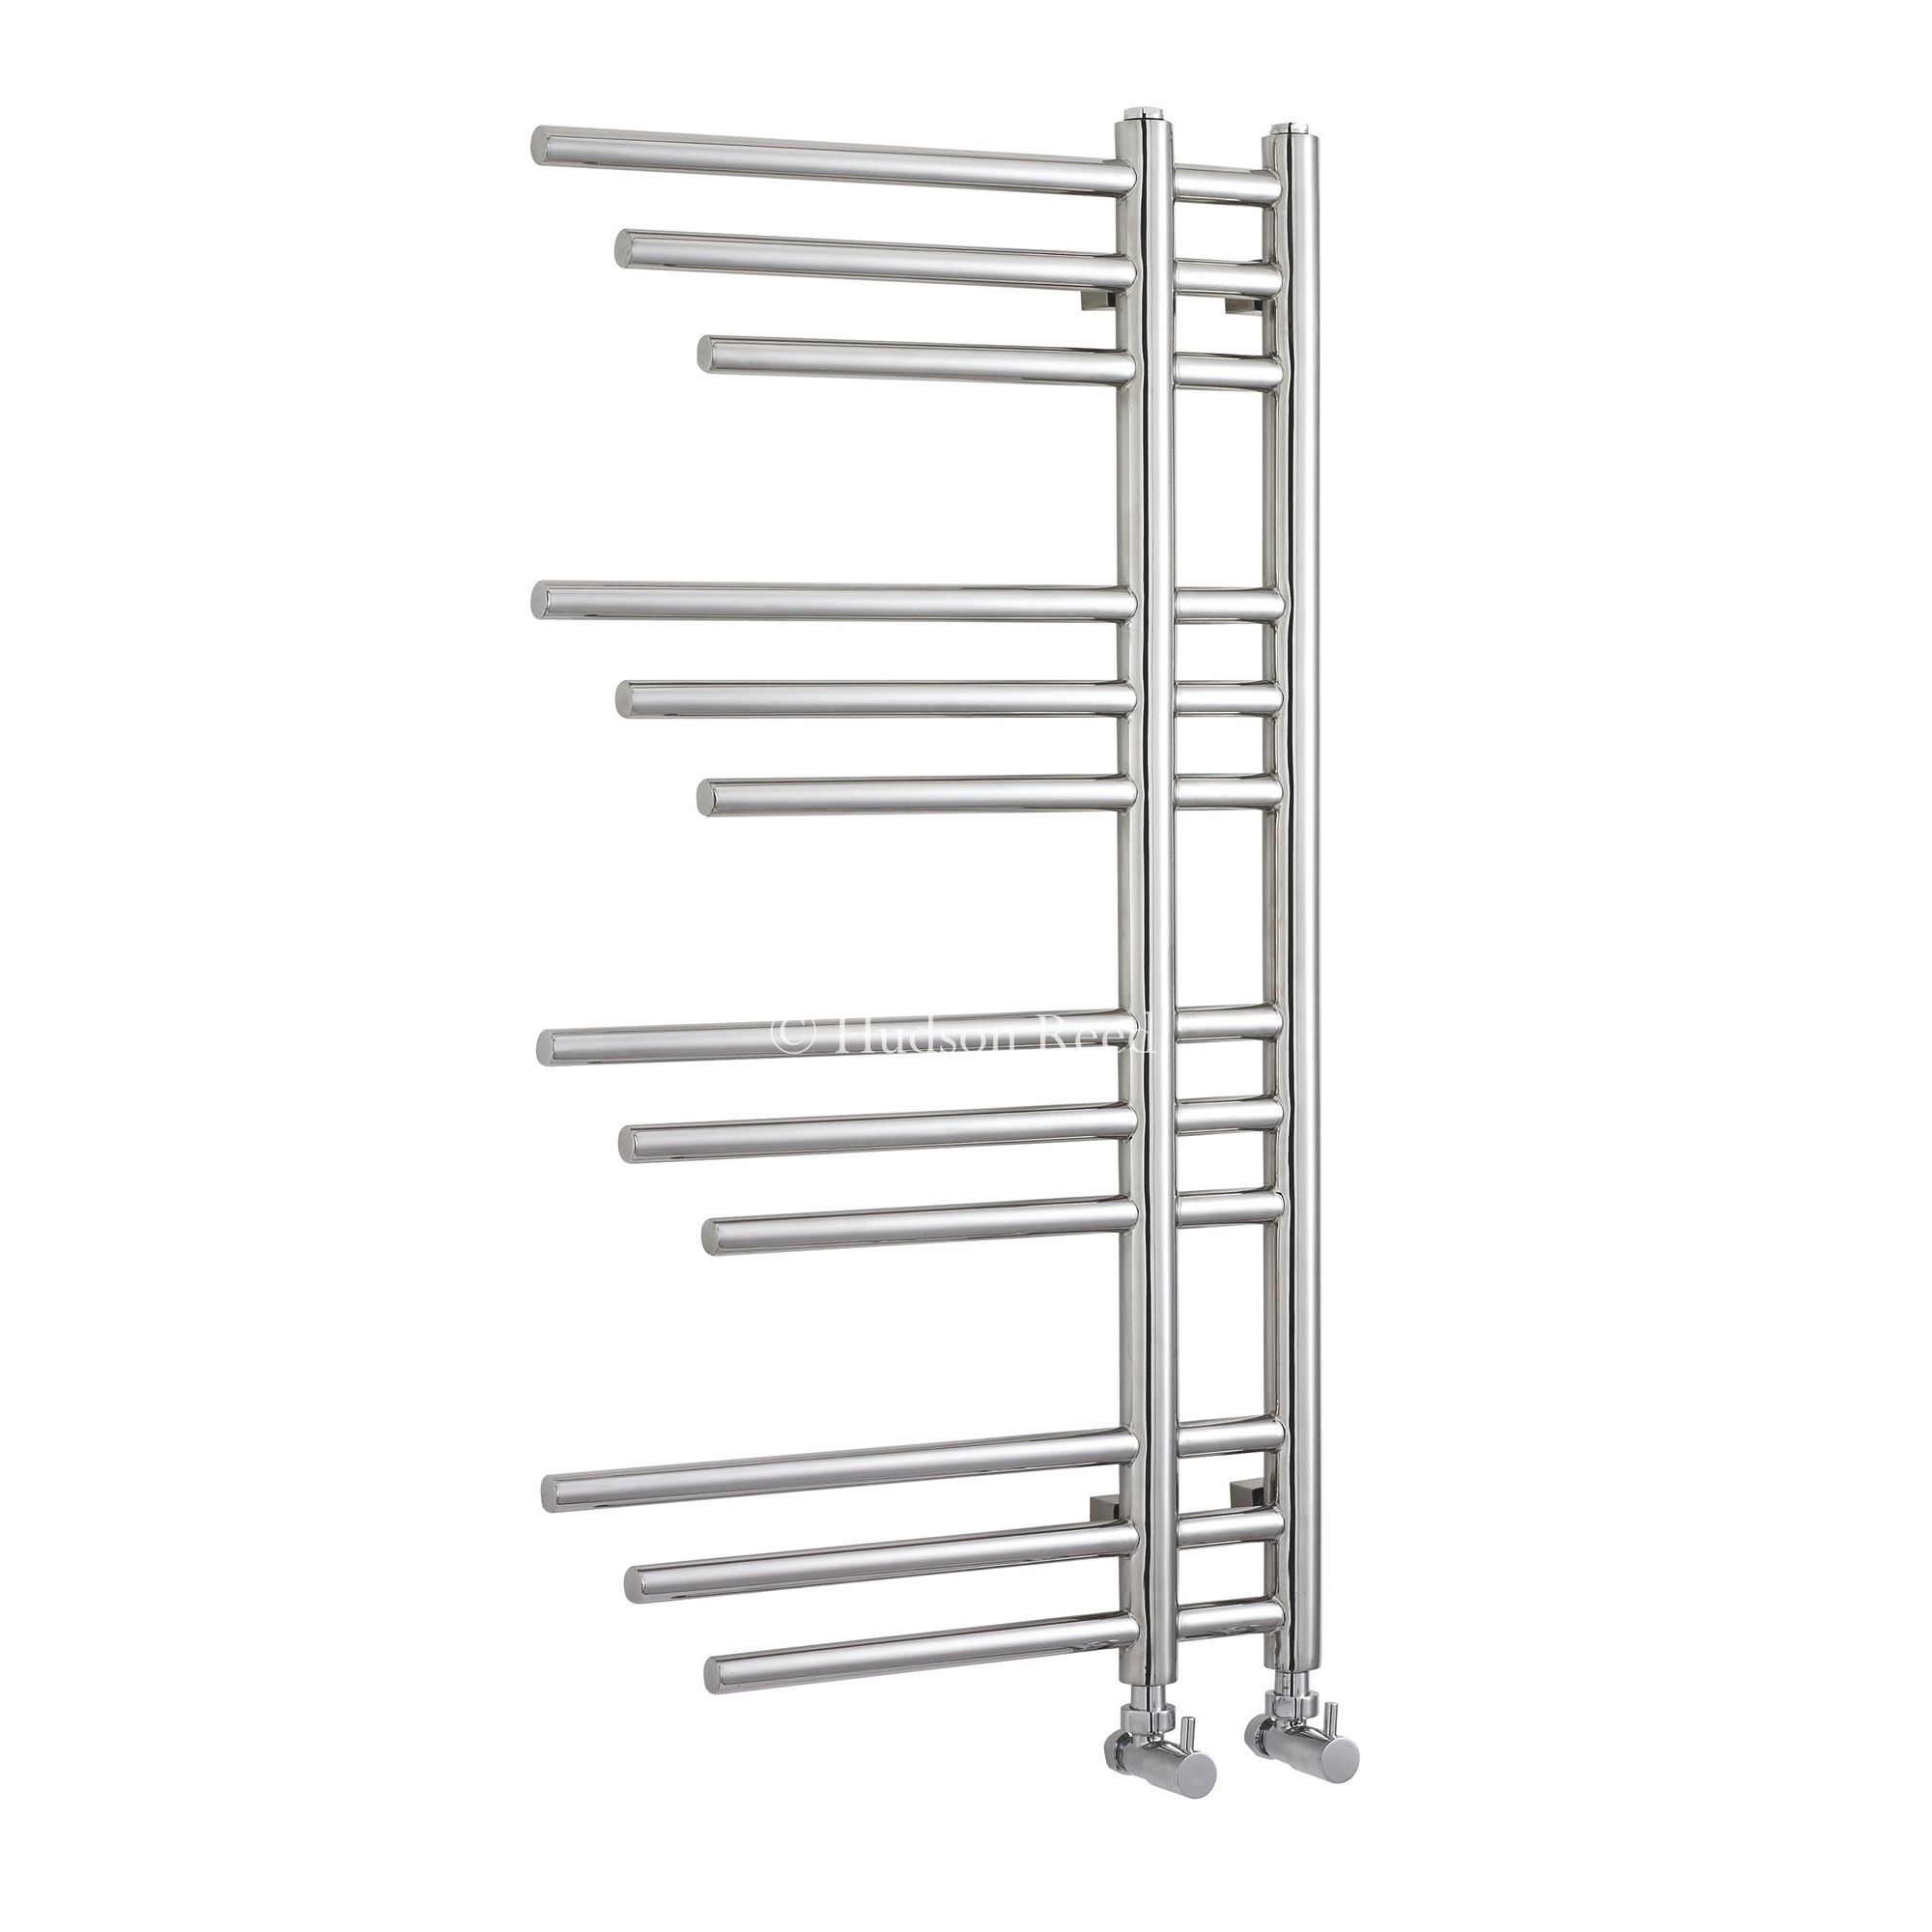 Hudson Reed Finesse Radiator in Stainless - 150 cm x 50 cm at Tesco Direct